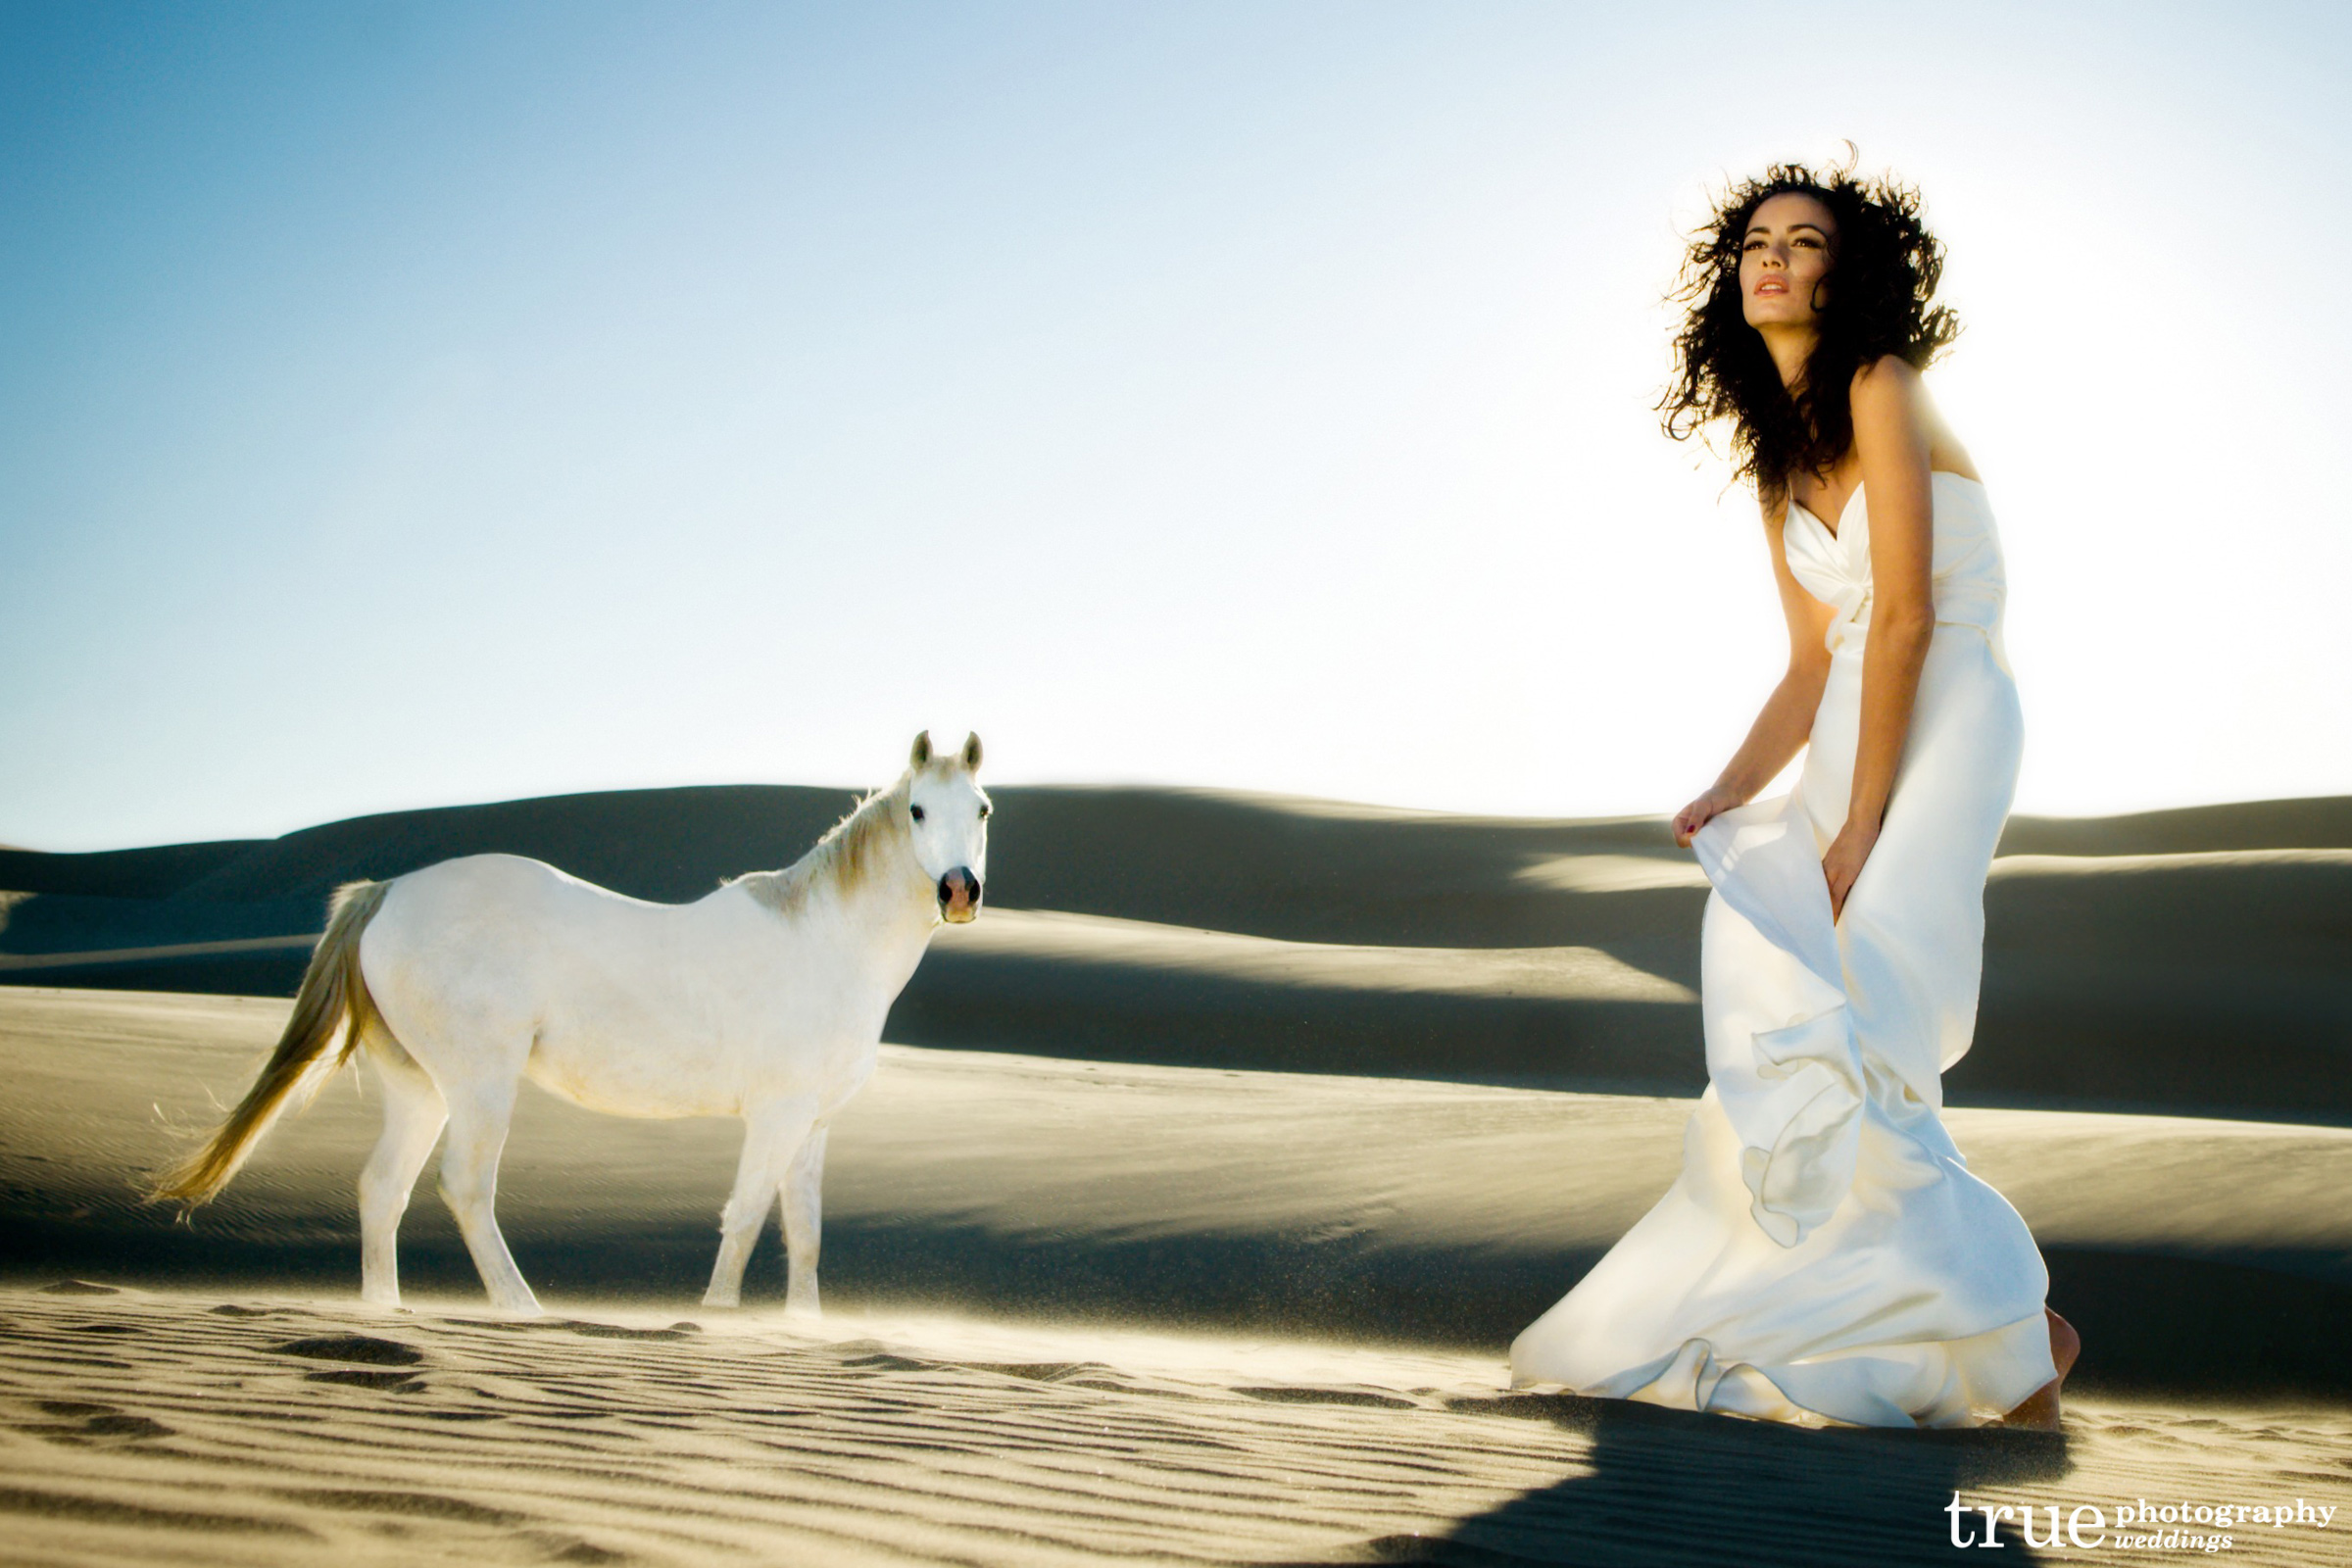 Fun-wedding-photos-bride-with-white-horse